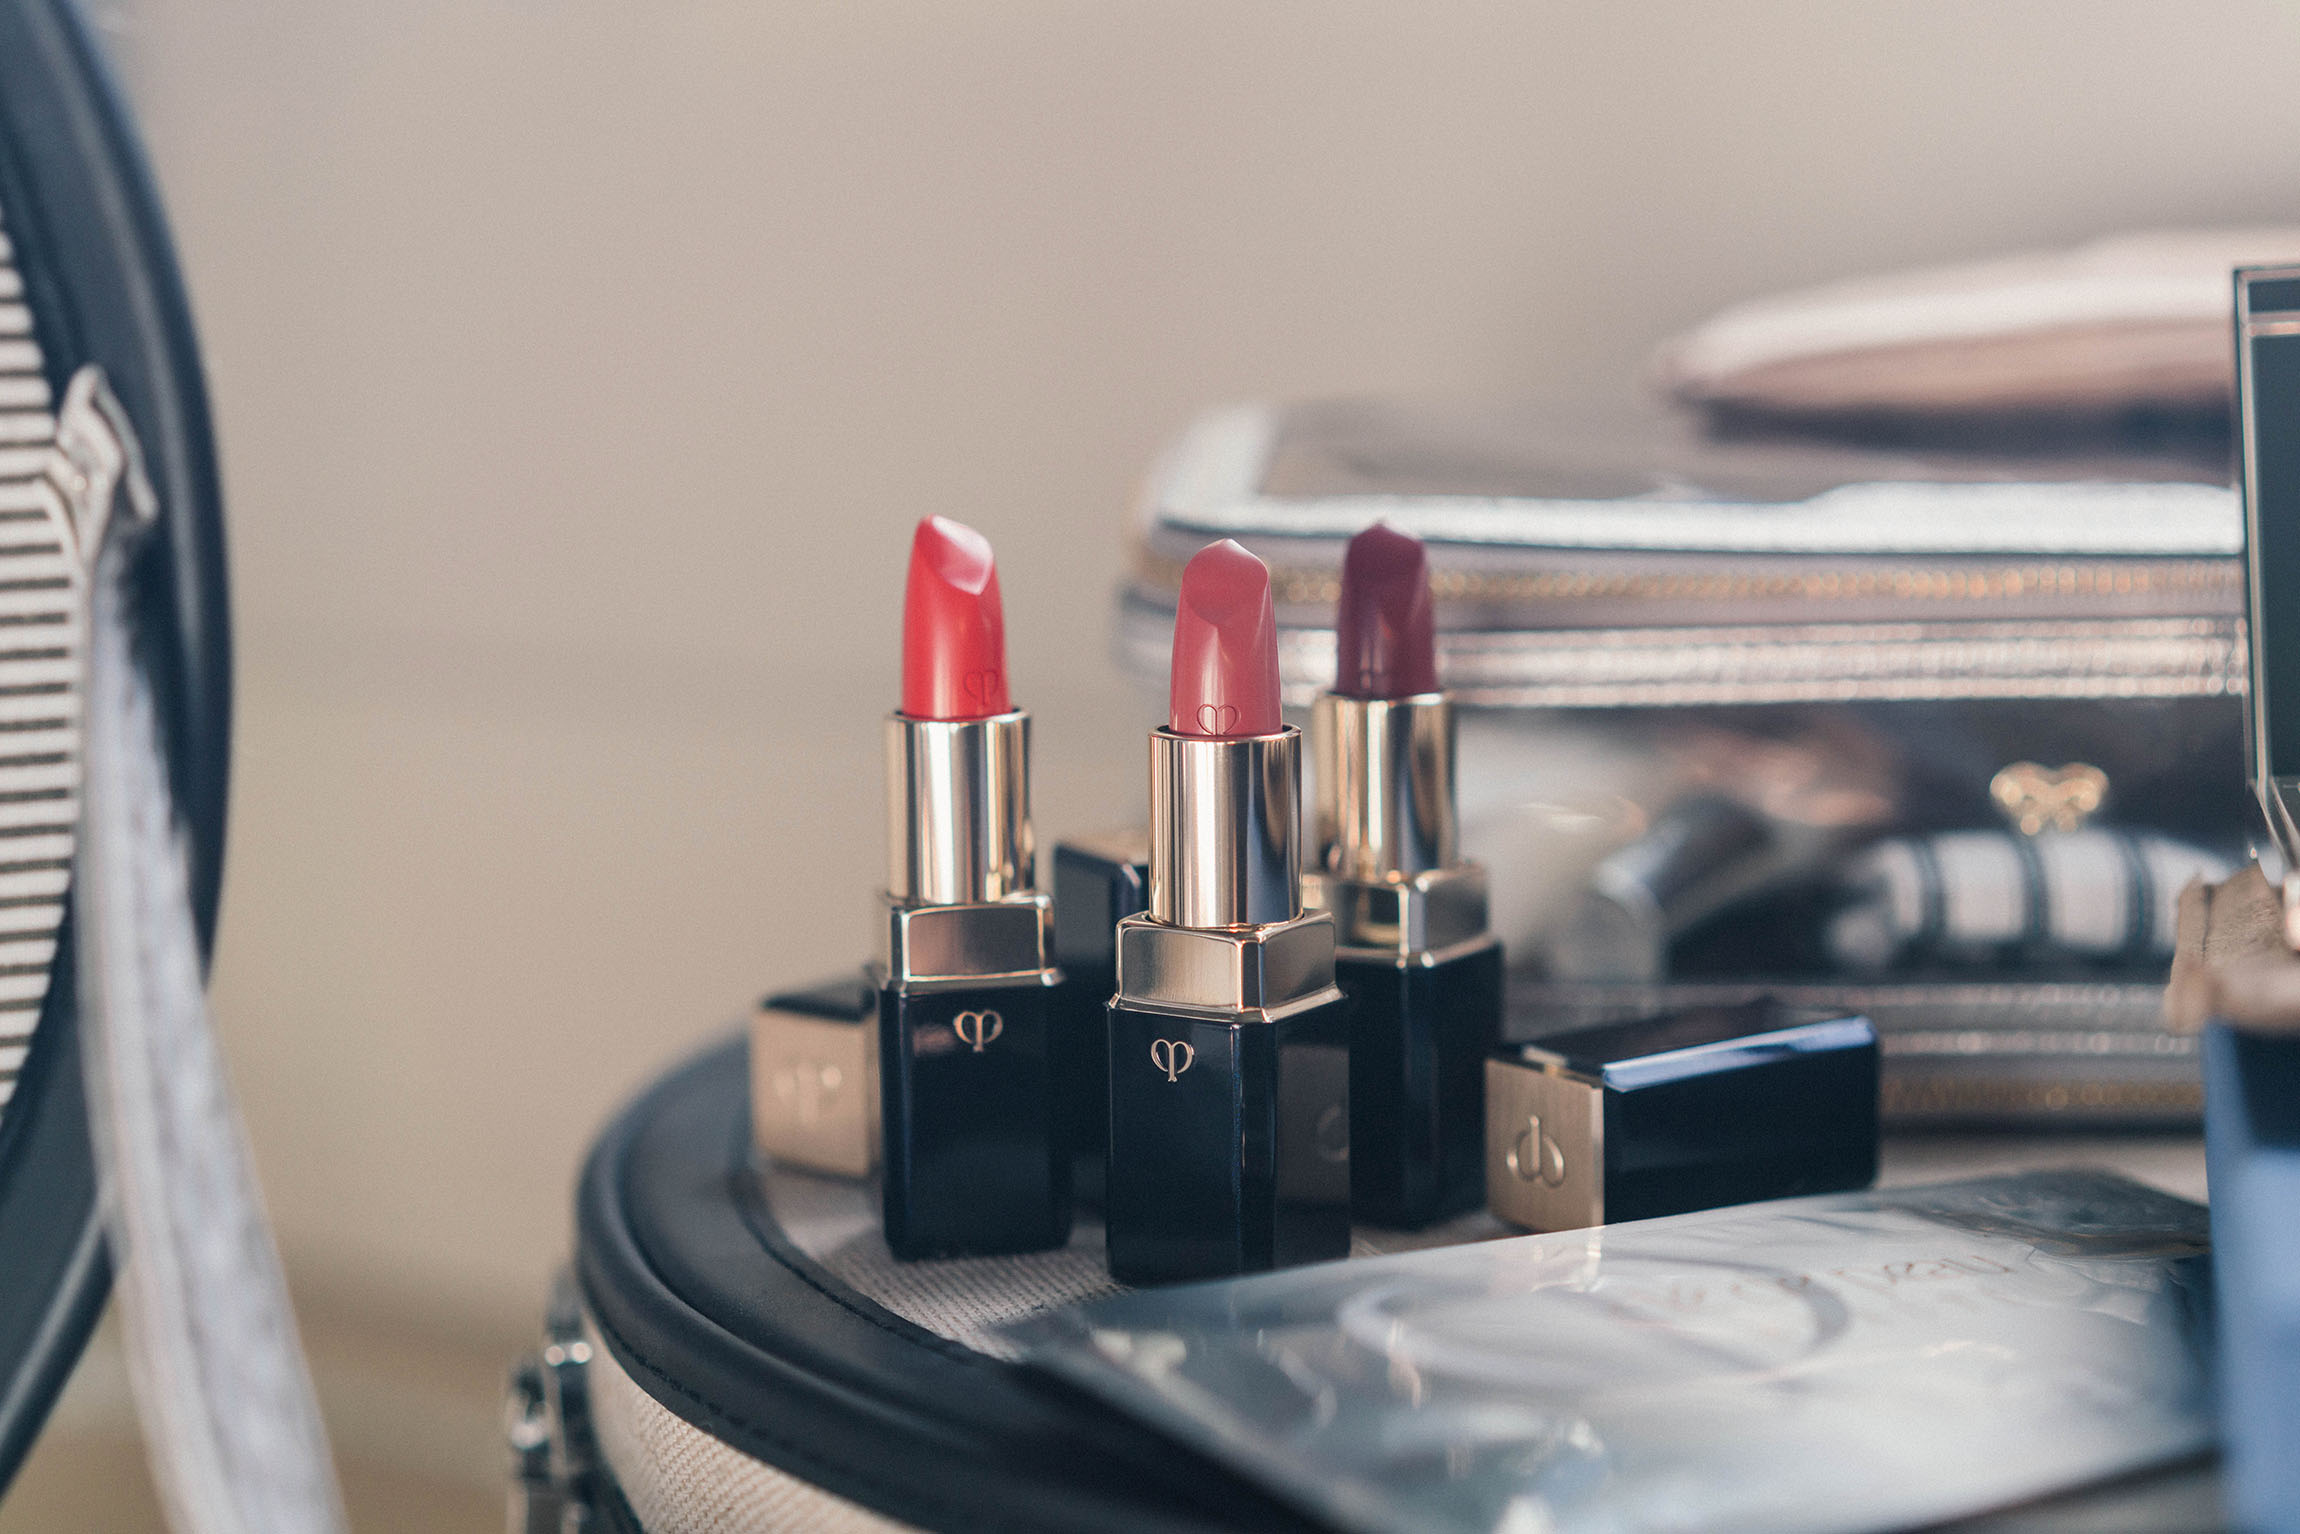 Clé de Peau Beauté Lipstick , a luxuriously smooth lipstick with a unique petal-shaped tip that is designed to hug the lips with ultra-vibrant, luminous color. There are three new shades: Peach Stone (13), Crystal Star (14), Desert Rose (15).